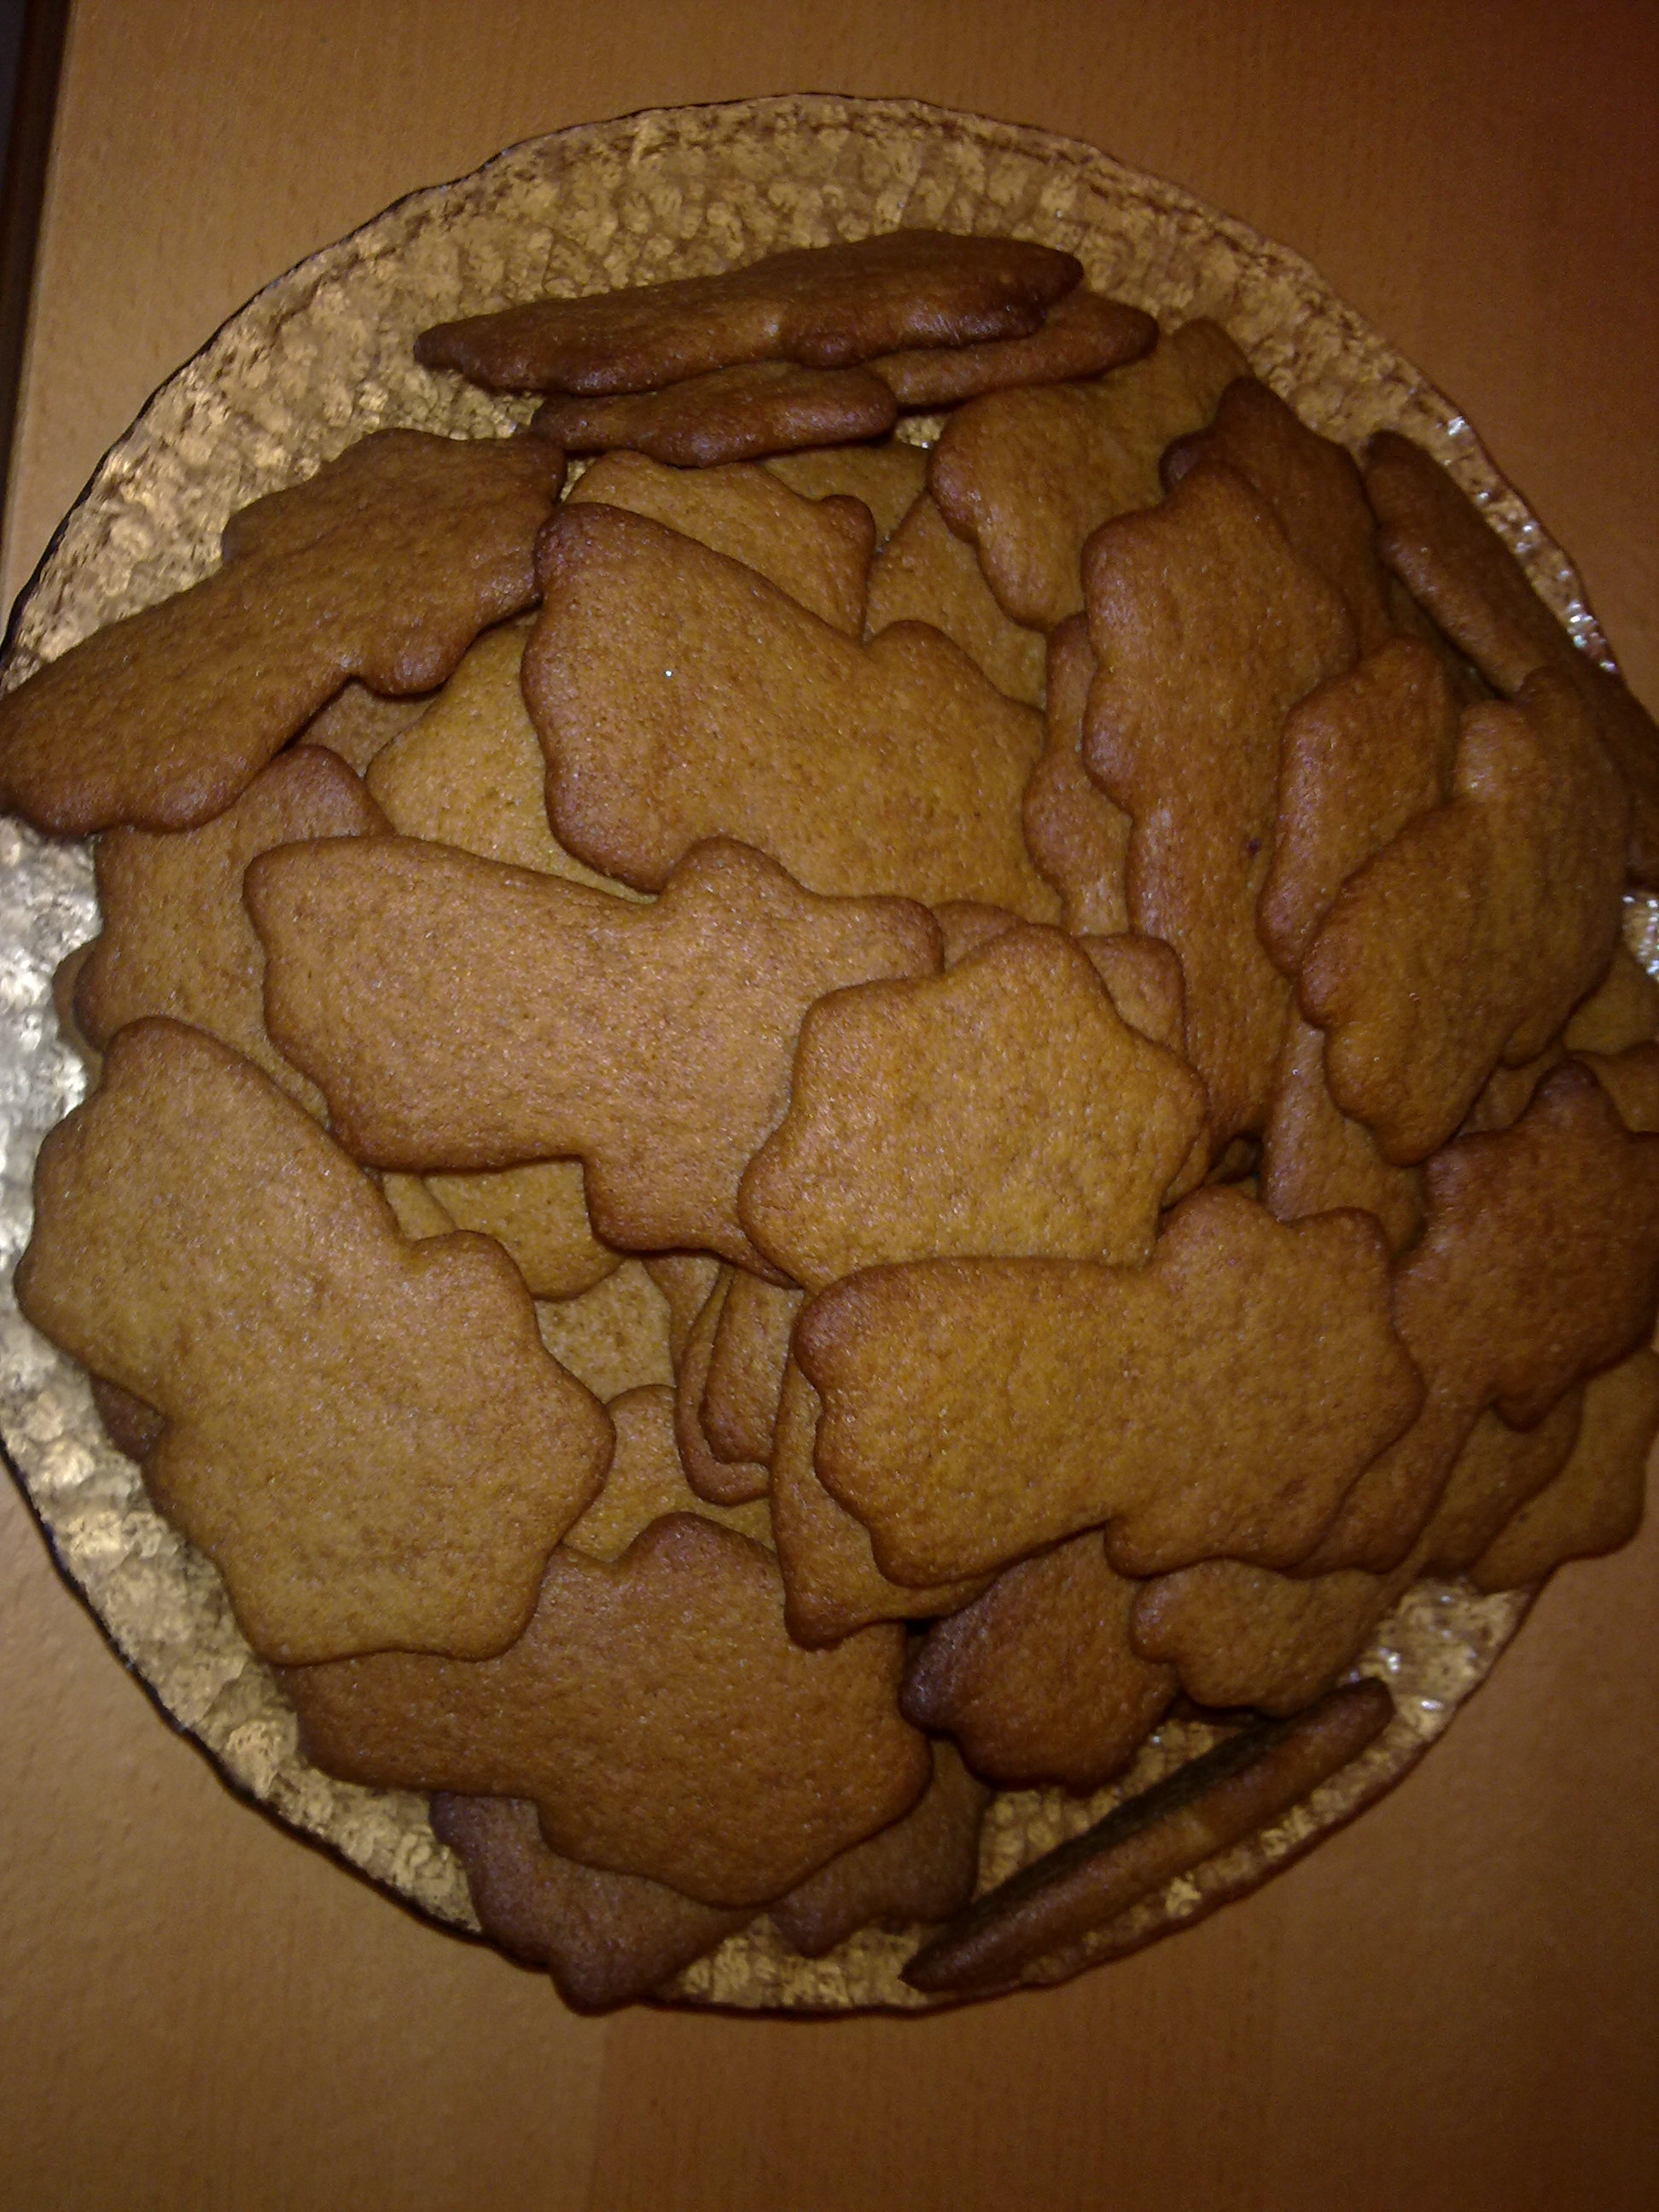 Pan di zenzero – Gingerbread